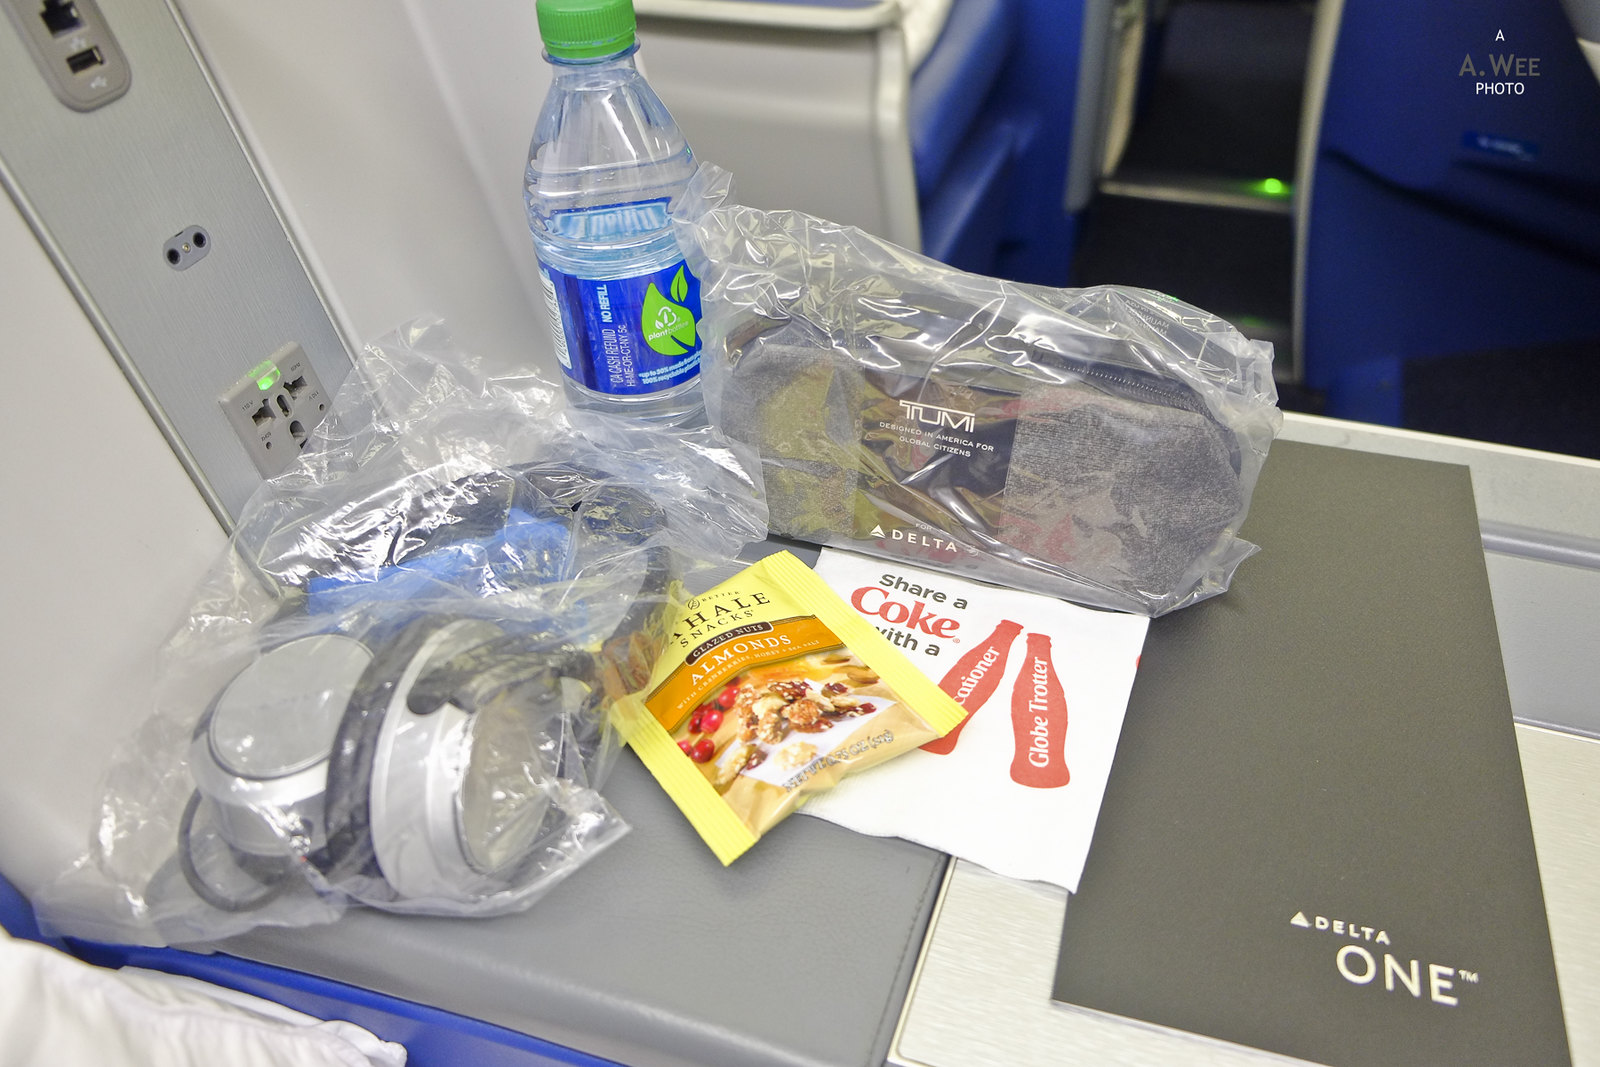 Amenities on the seat